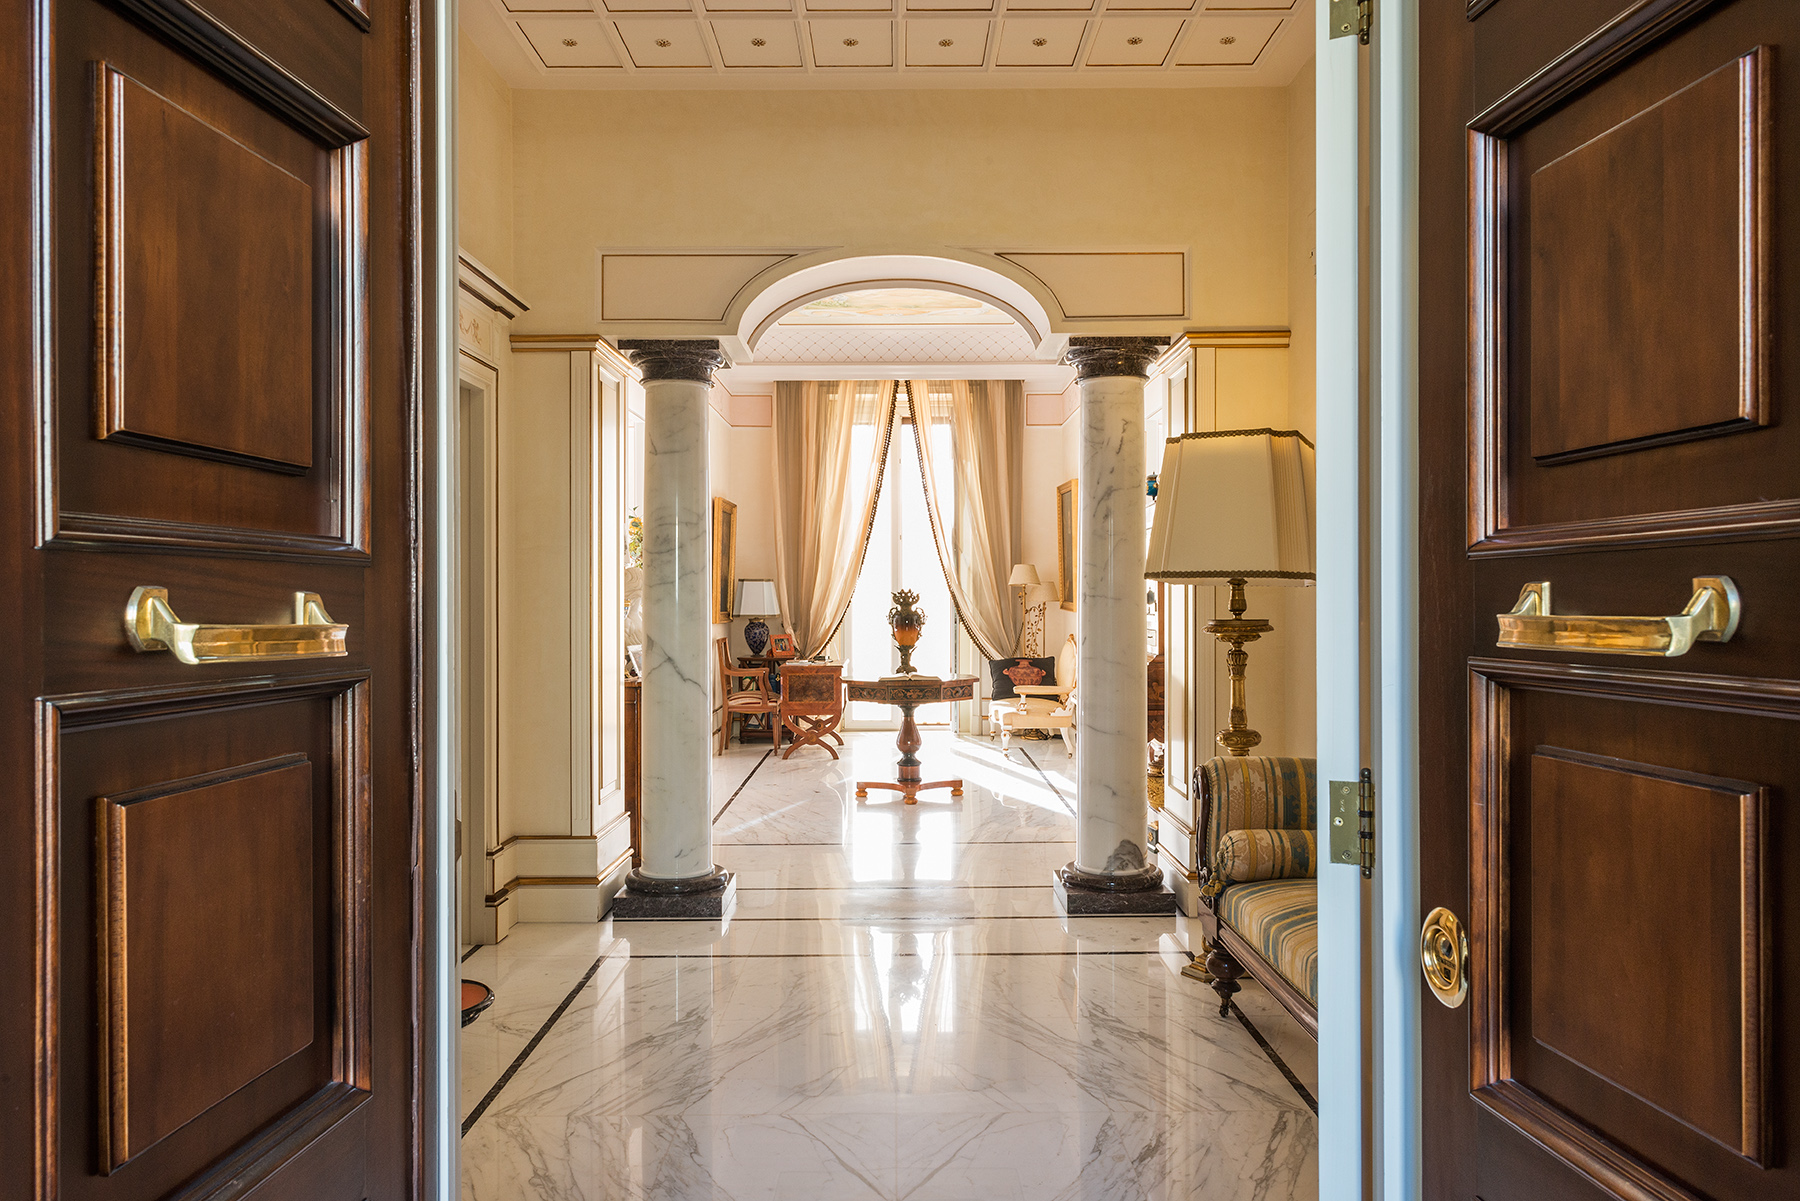 Apartment for Sale at Magnificent classical style apartment Via Vittoria Colonna Napoli, 80121 Italy